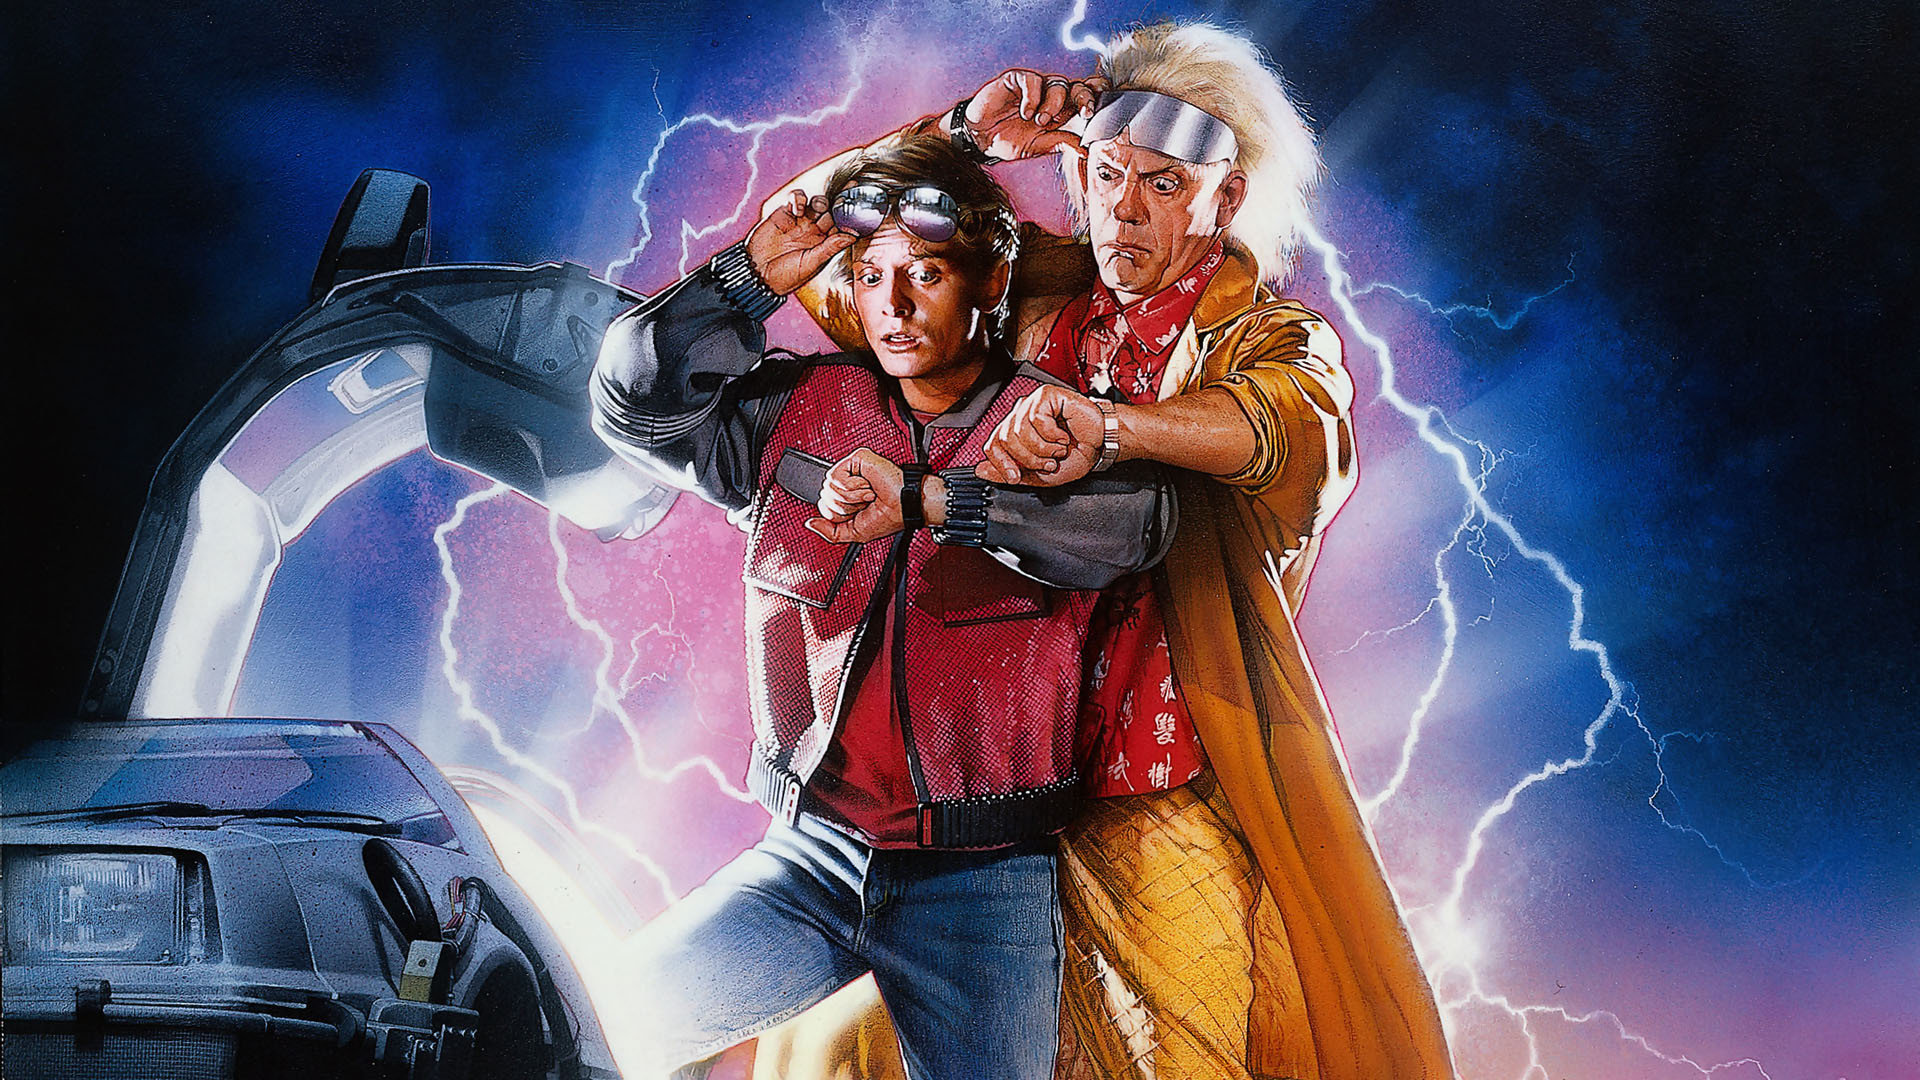 Free Back To The Future high quality wallpaper ID:73465 for full hd desktop